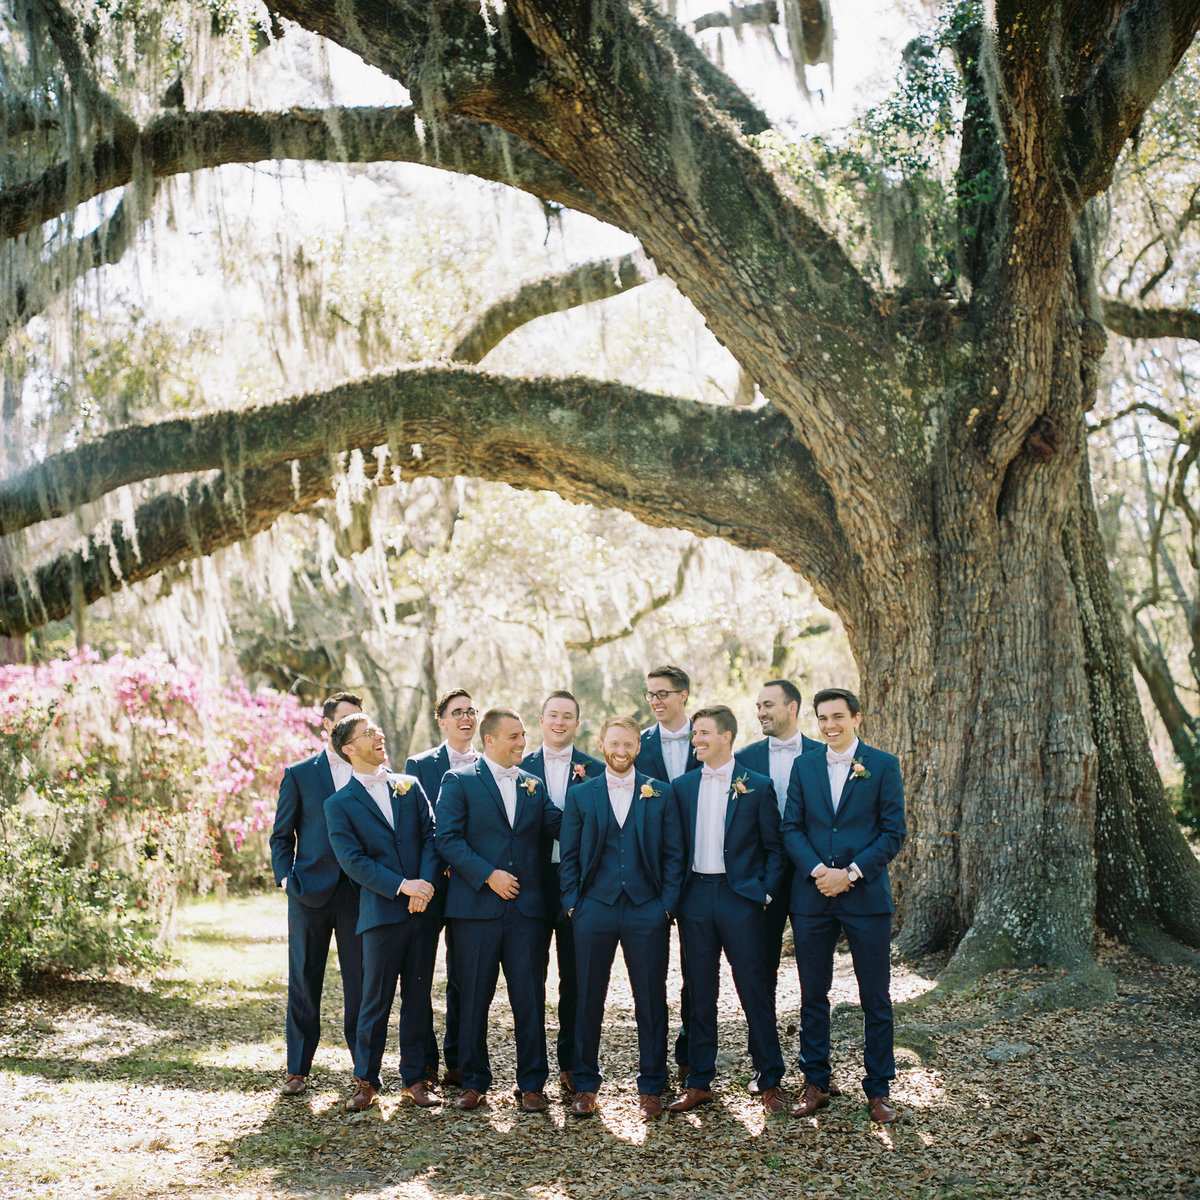 charleston-wedding-venues-magnolia-plantation-philip-casey-photography-029